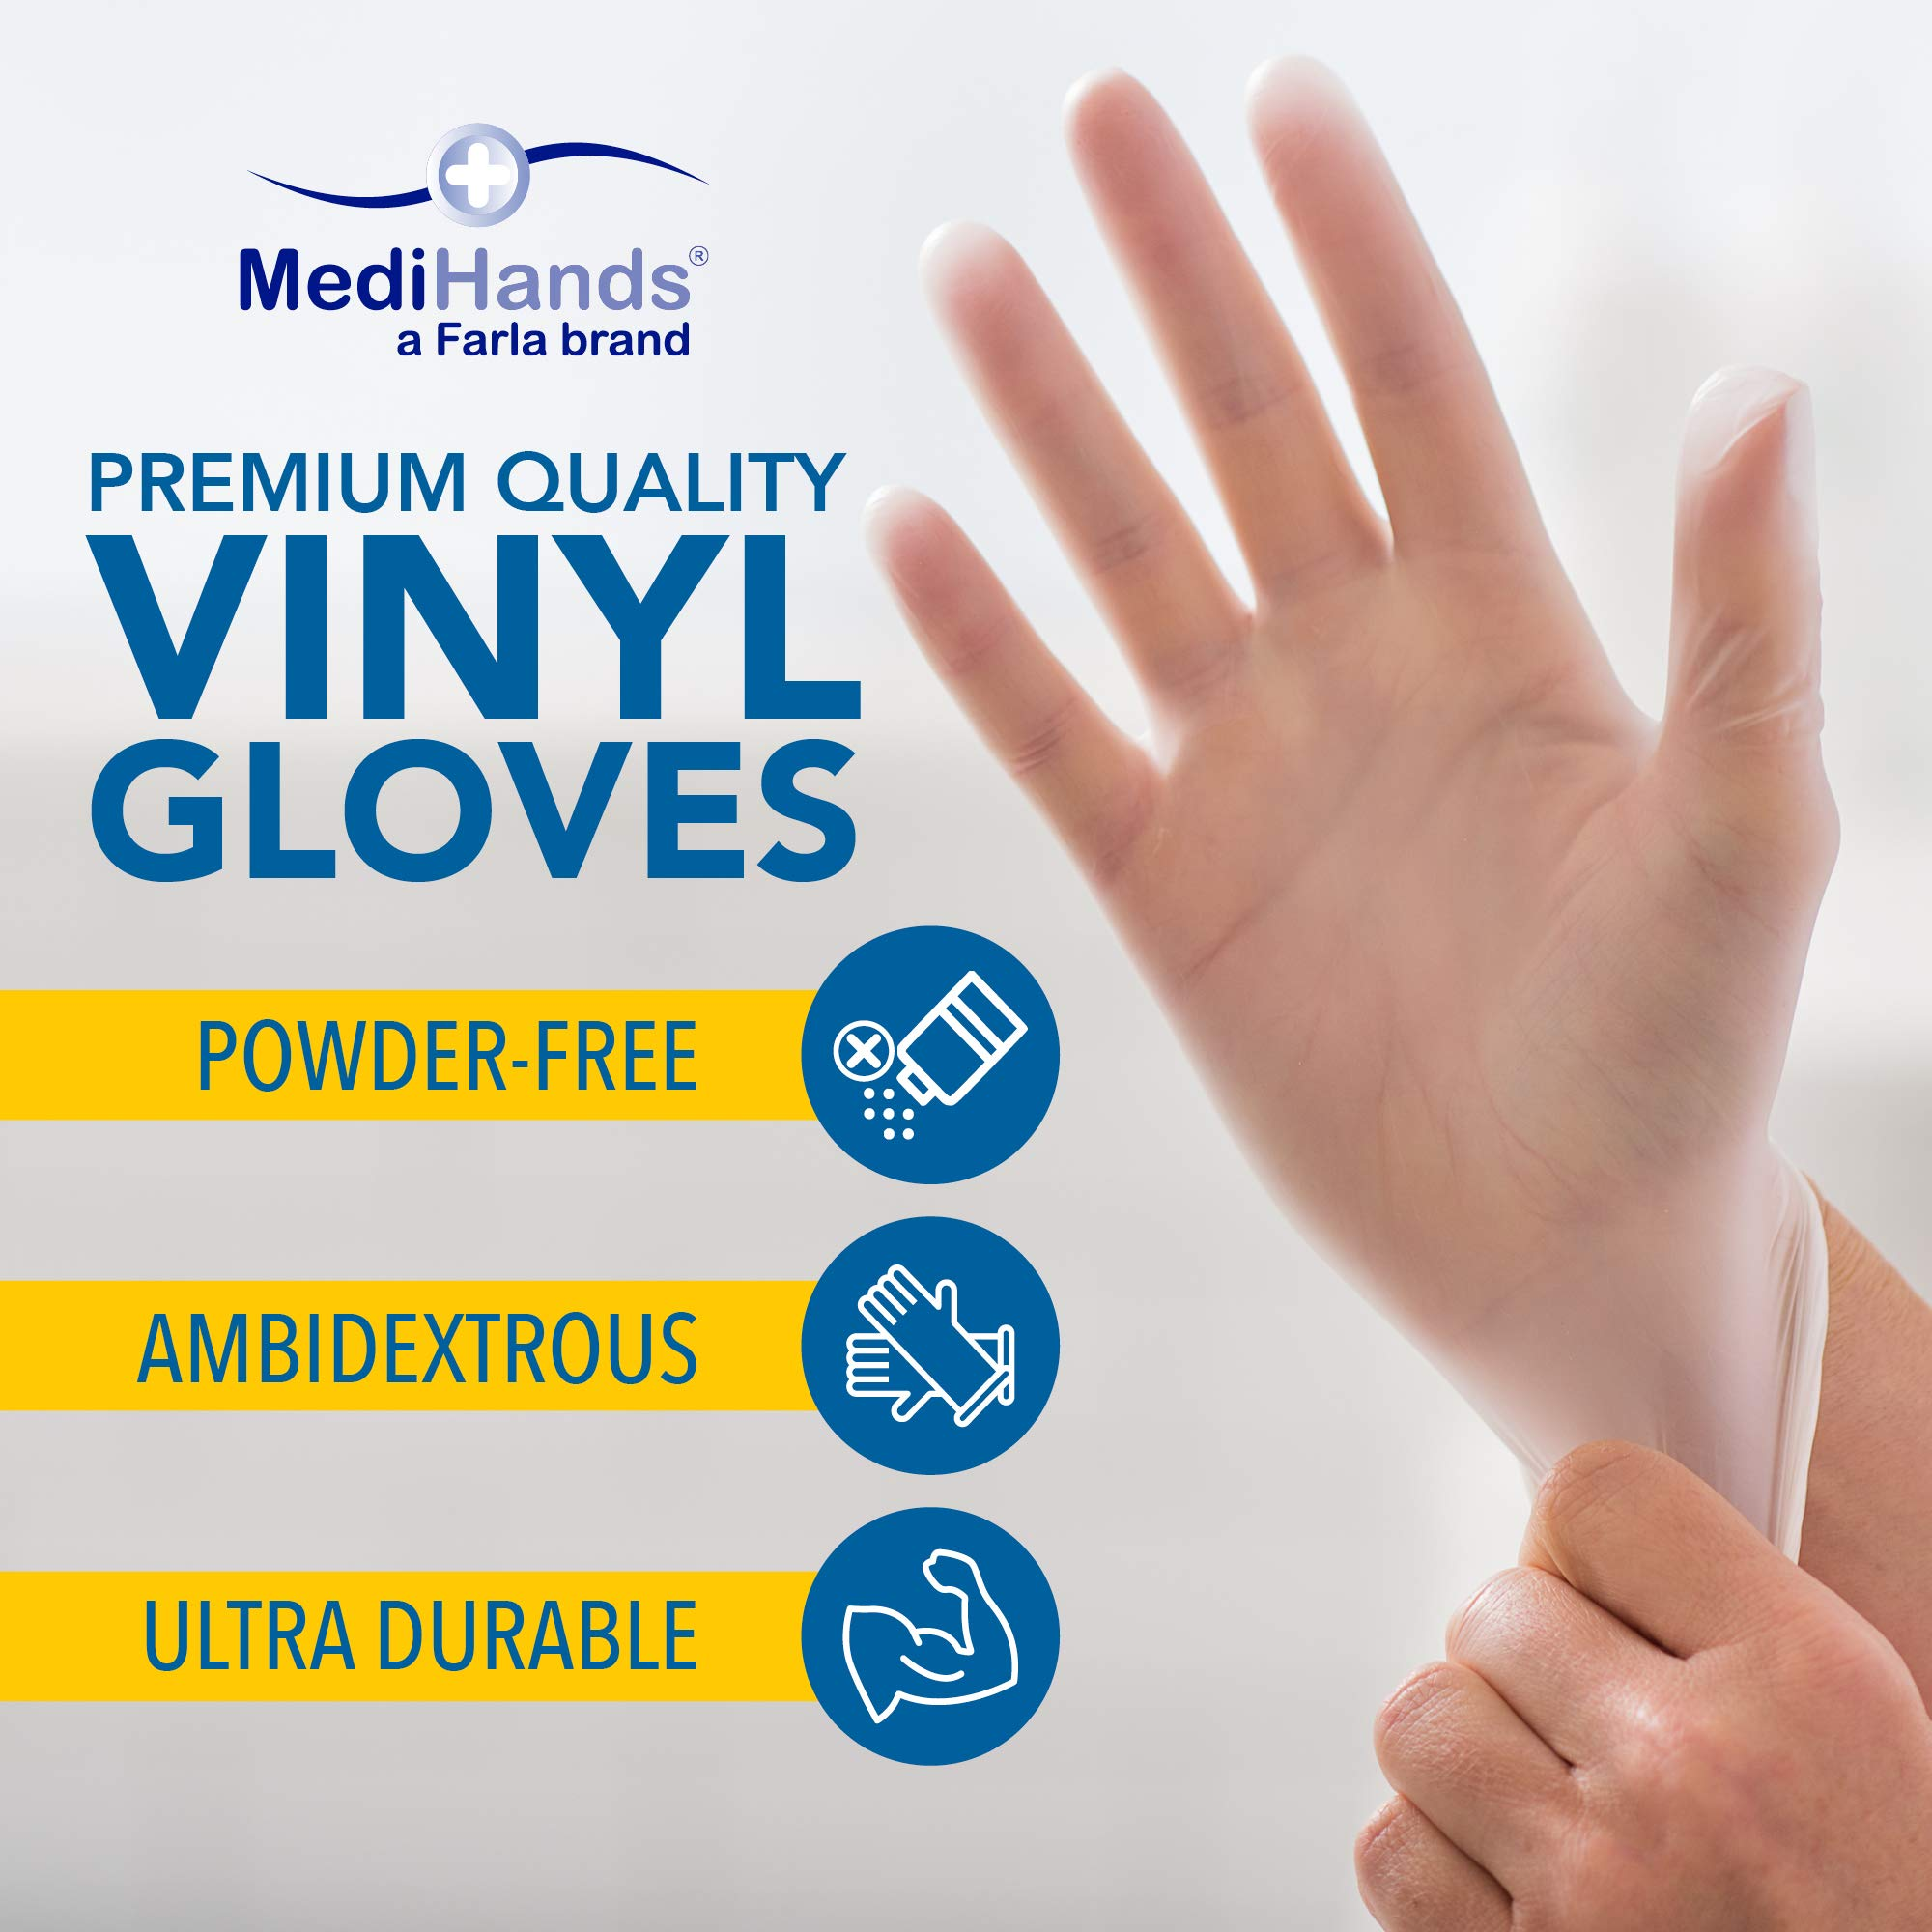 Heavy Duty Disposable Vinyl Gloves, 1,000 Count, Medium – Powder Free, Ambidextrous, Super Comfortable, Extra Strong, Durable and Stretchy, Medical, Food and Multi Use – By MediHands by MediHands (Image #2)